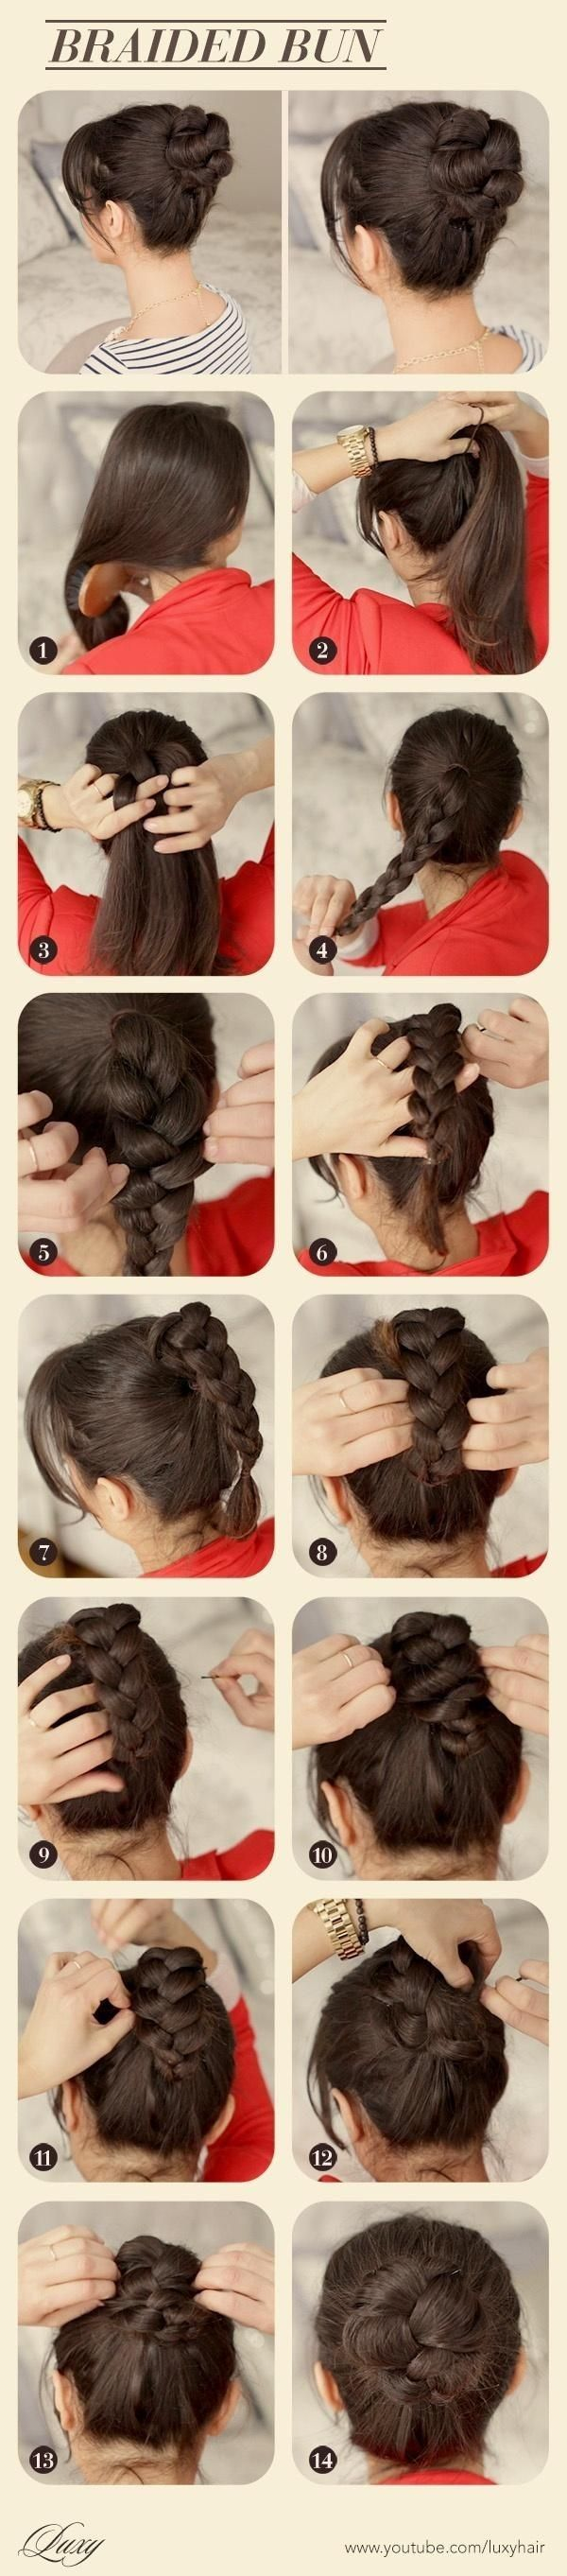 diy braided bun pictures photos and images for facebook